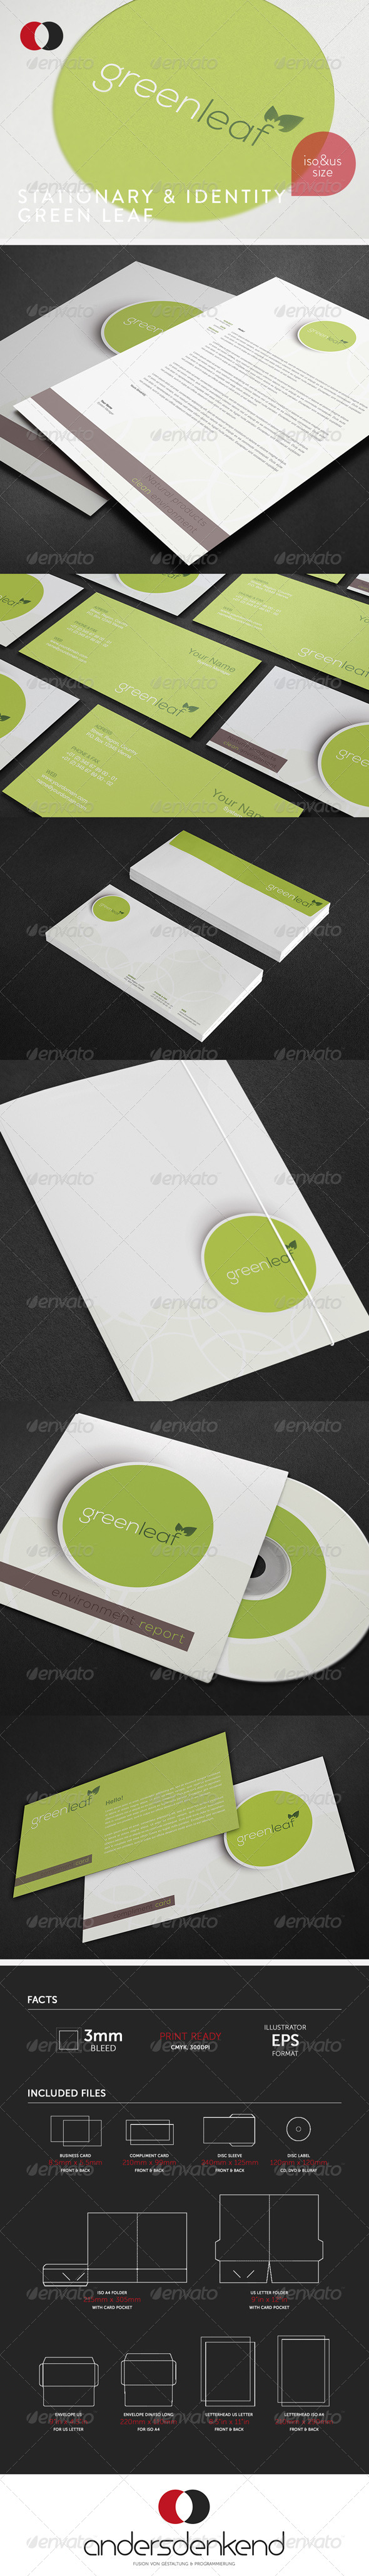 Modern Stationary Template - Vol.7 - Stationery Print Templates